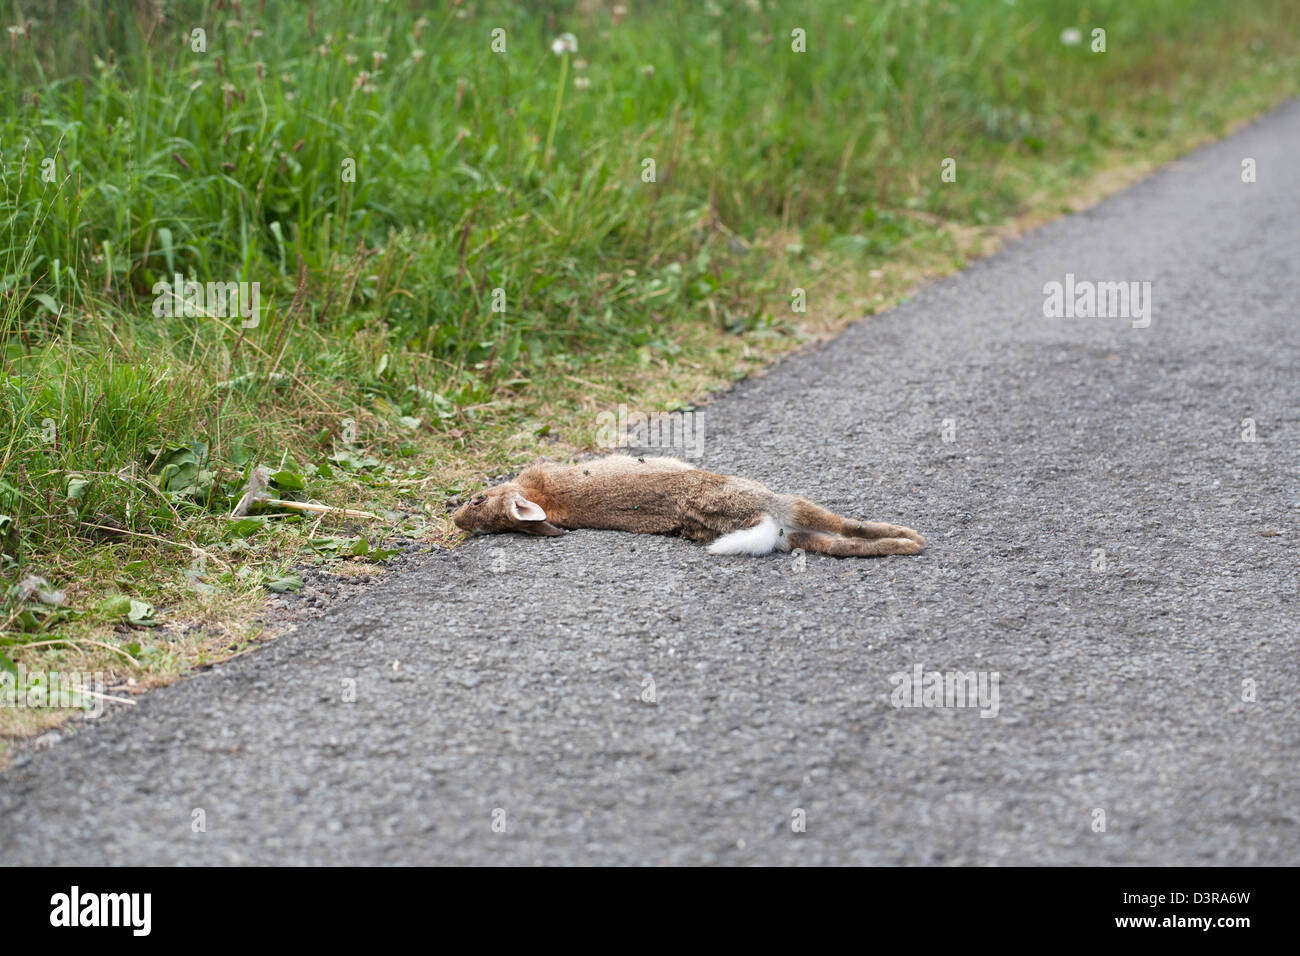 Rabbit killed in a car accident - Stock Image